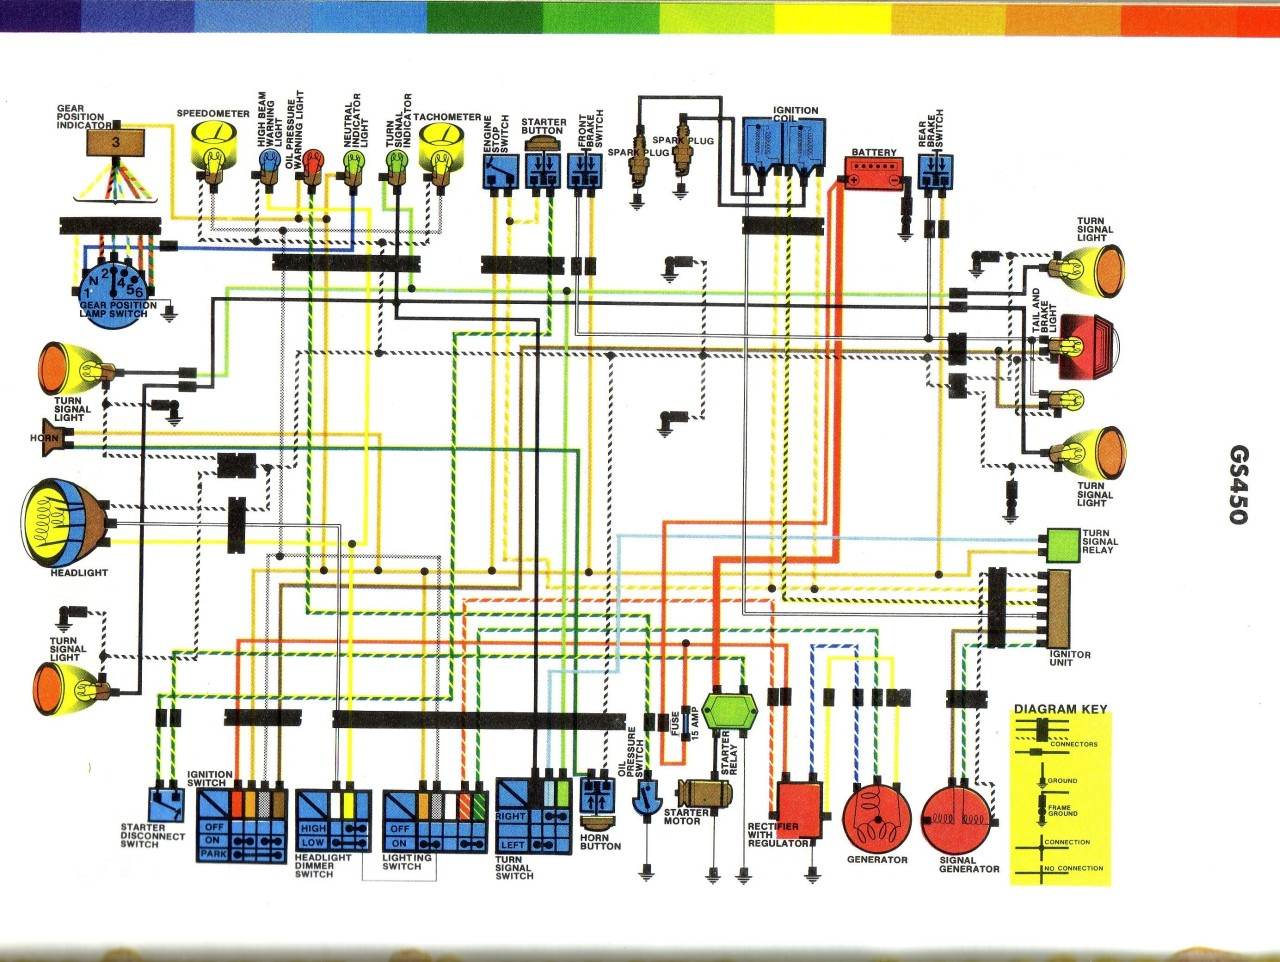 gs750 wiring diagram wiring diagram syssuzuki gs 750 wiring diagram wiring diagram technic gs750 wiring diagram [ 1280 x 962 Pixel ]